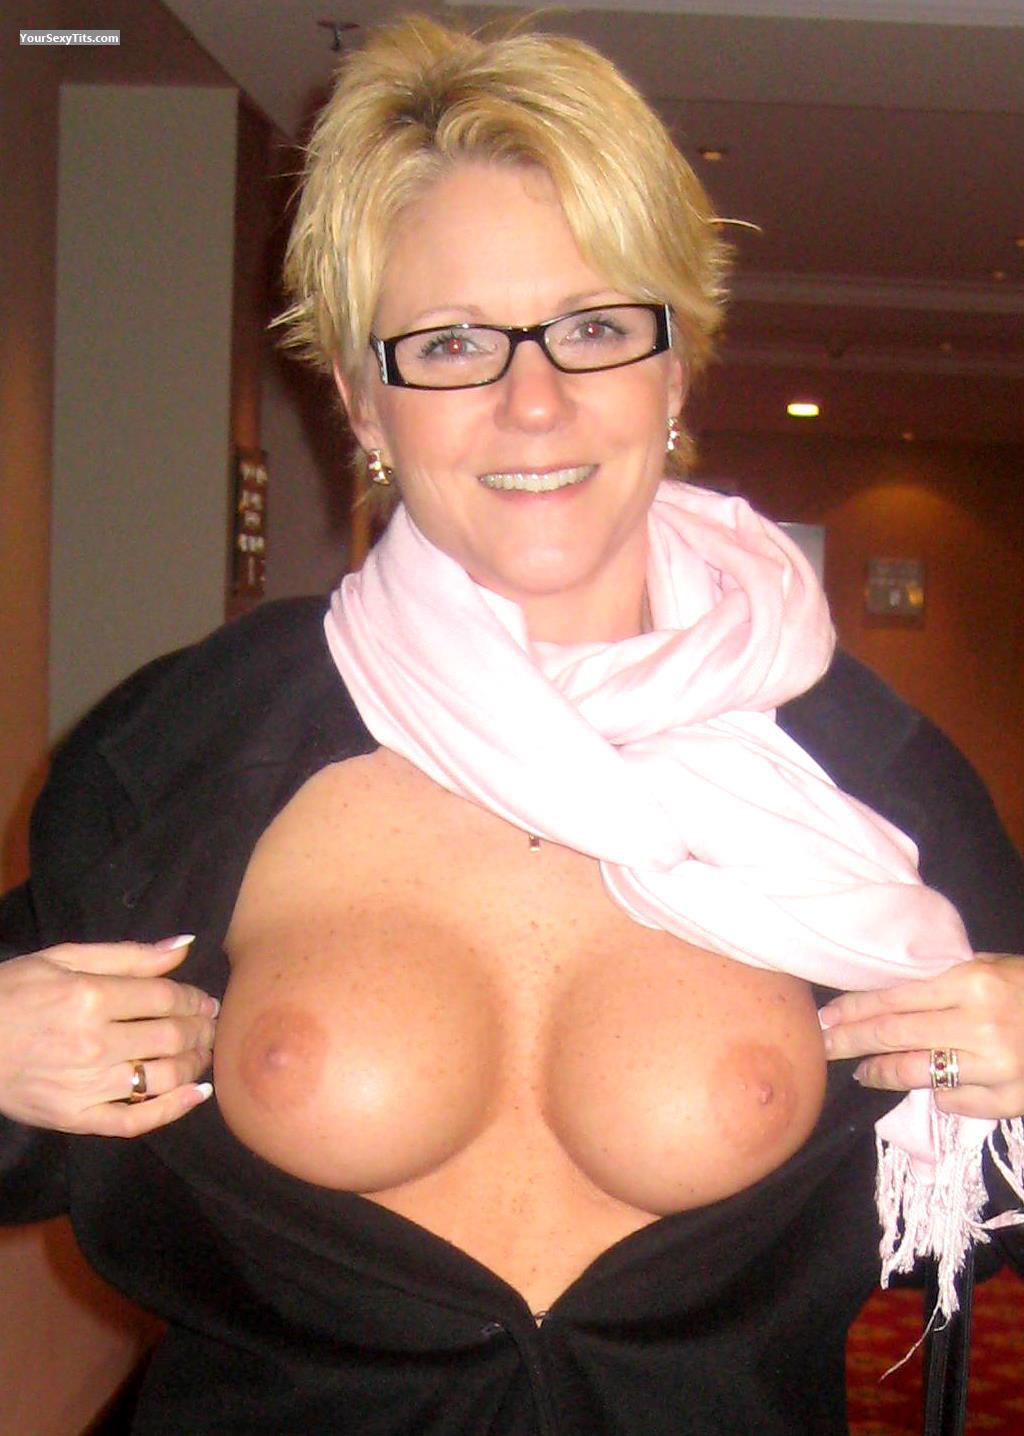 Tit Flash: Medium Tits - Topless Cheri from United States